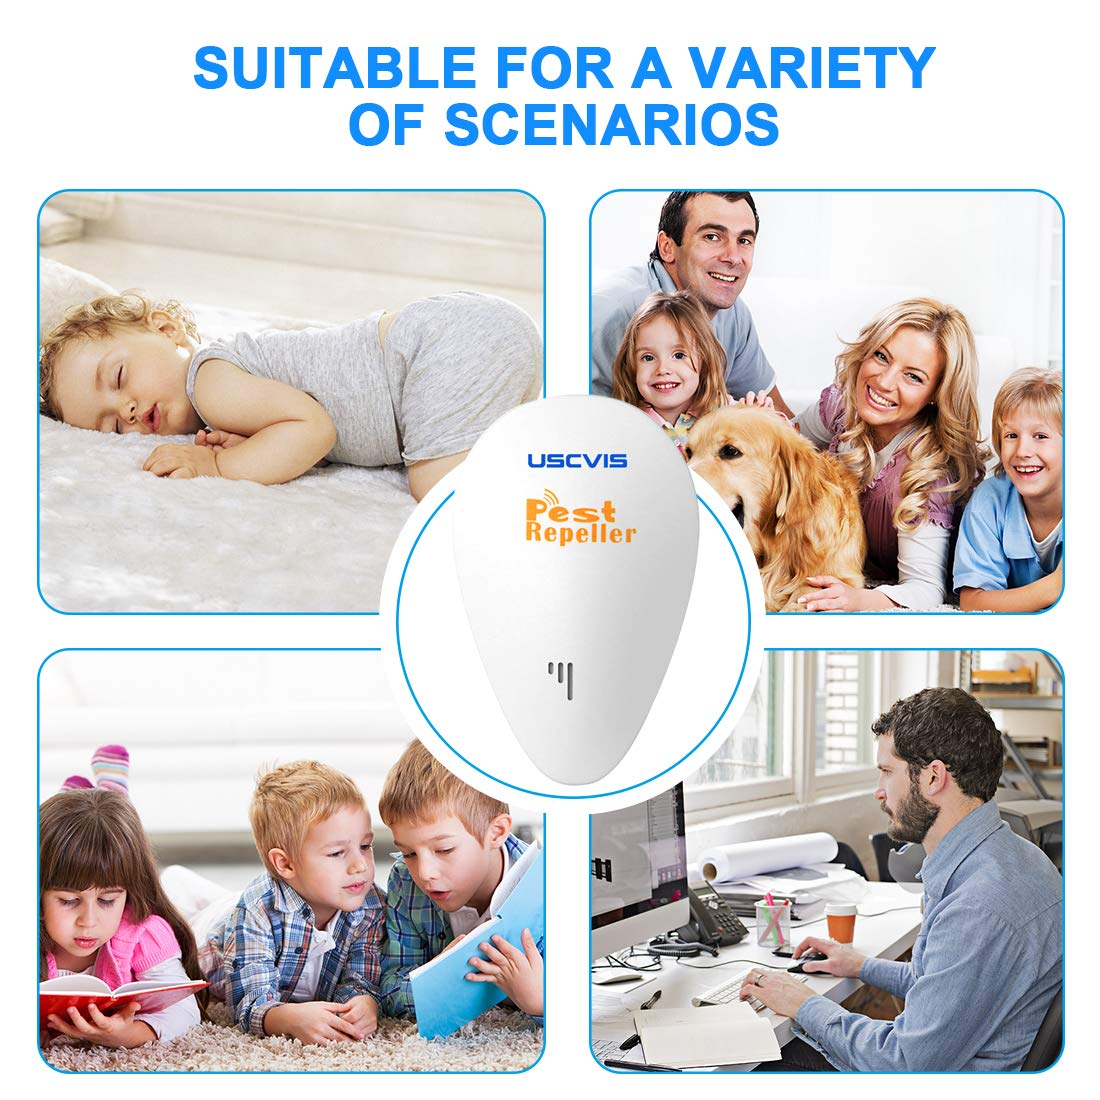 4 Pack Flies Bed Bugs Ants Electronic Insect Repellent Against Mice /& Mouse XFJ Ultrasonic Pest Repeller Fleas Indoor Plug in Night Light Pest Control Anti Moths Cockroaches